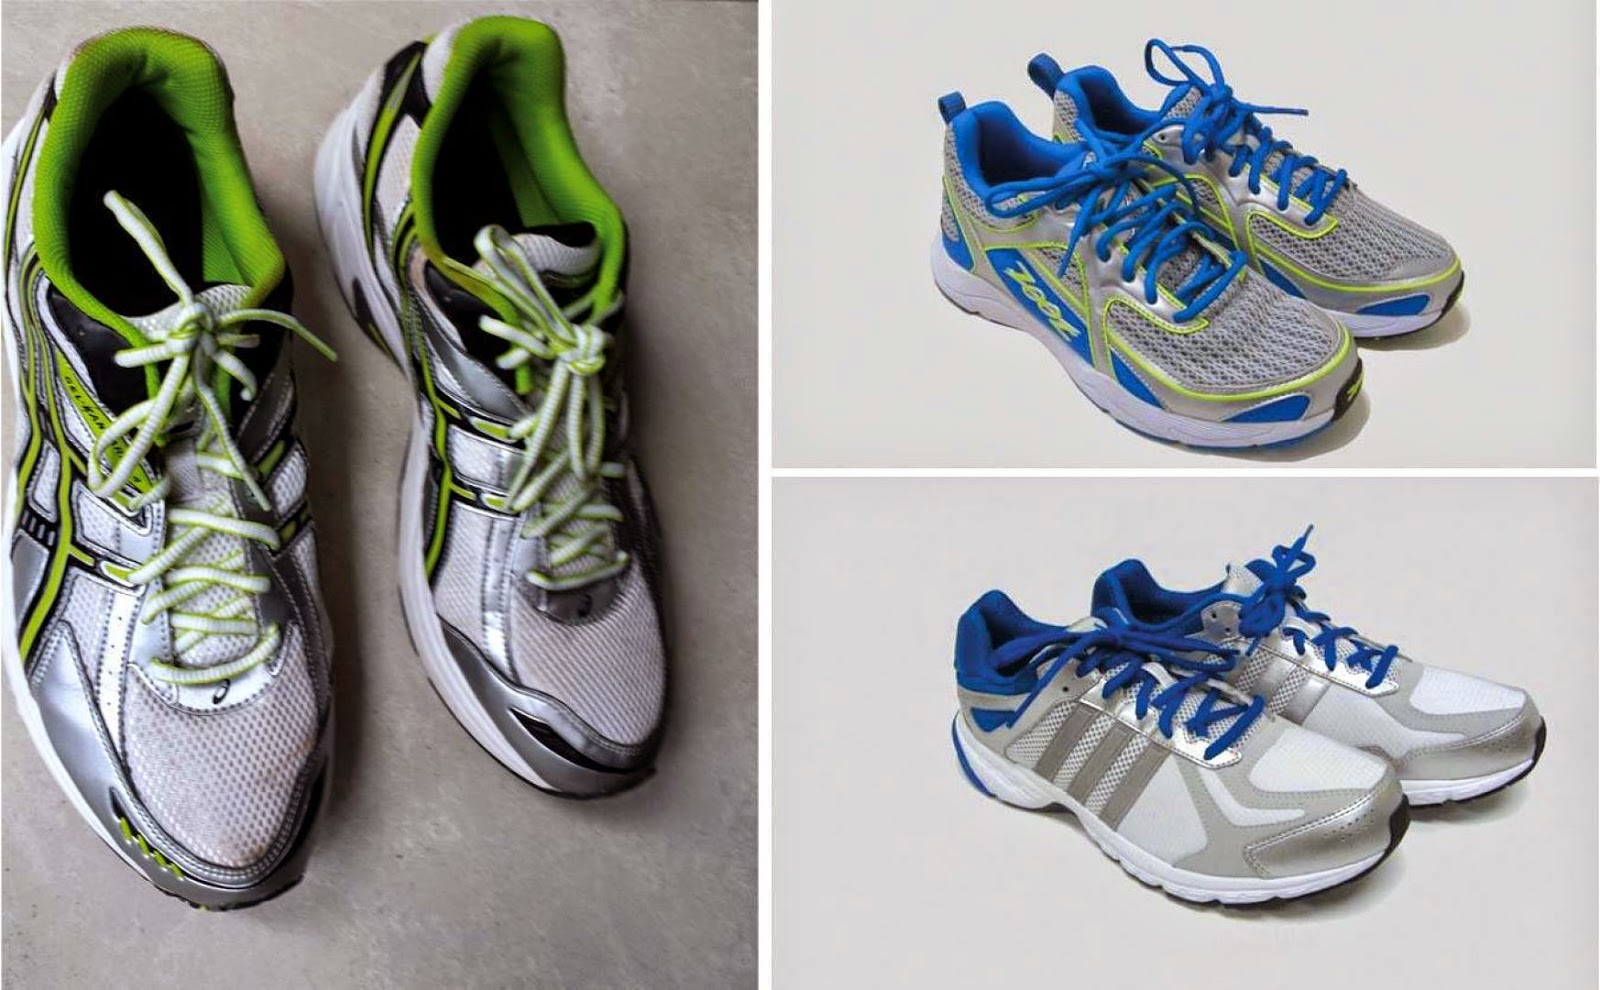 The next set of running shoes for NSmen (reservists) will be from adidas and Zoot and will be available at the end of the year.